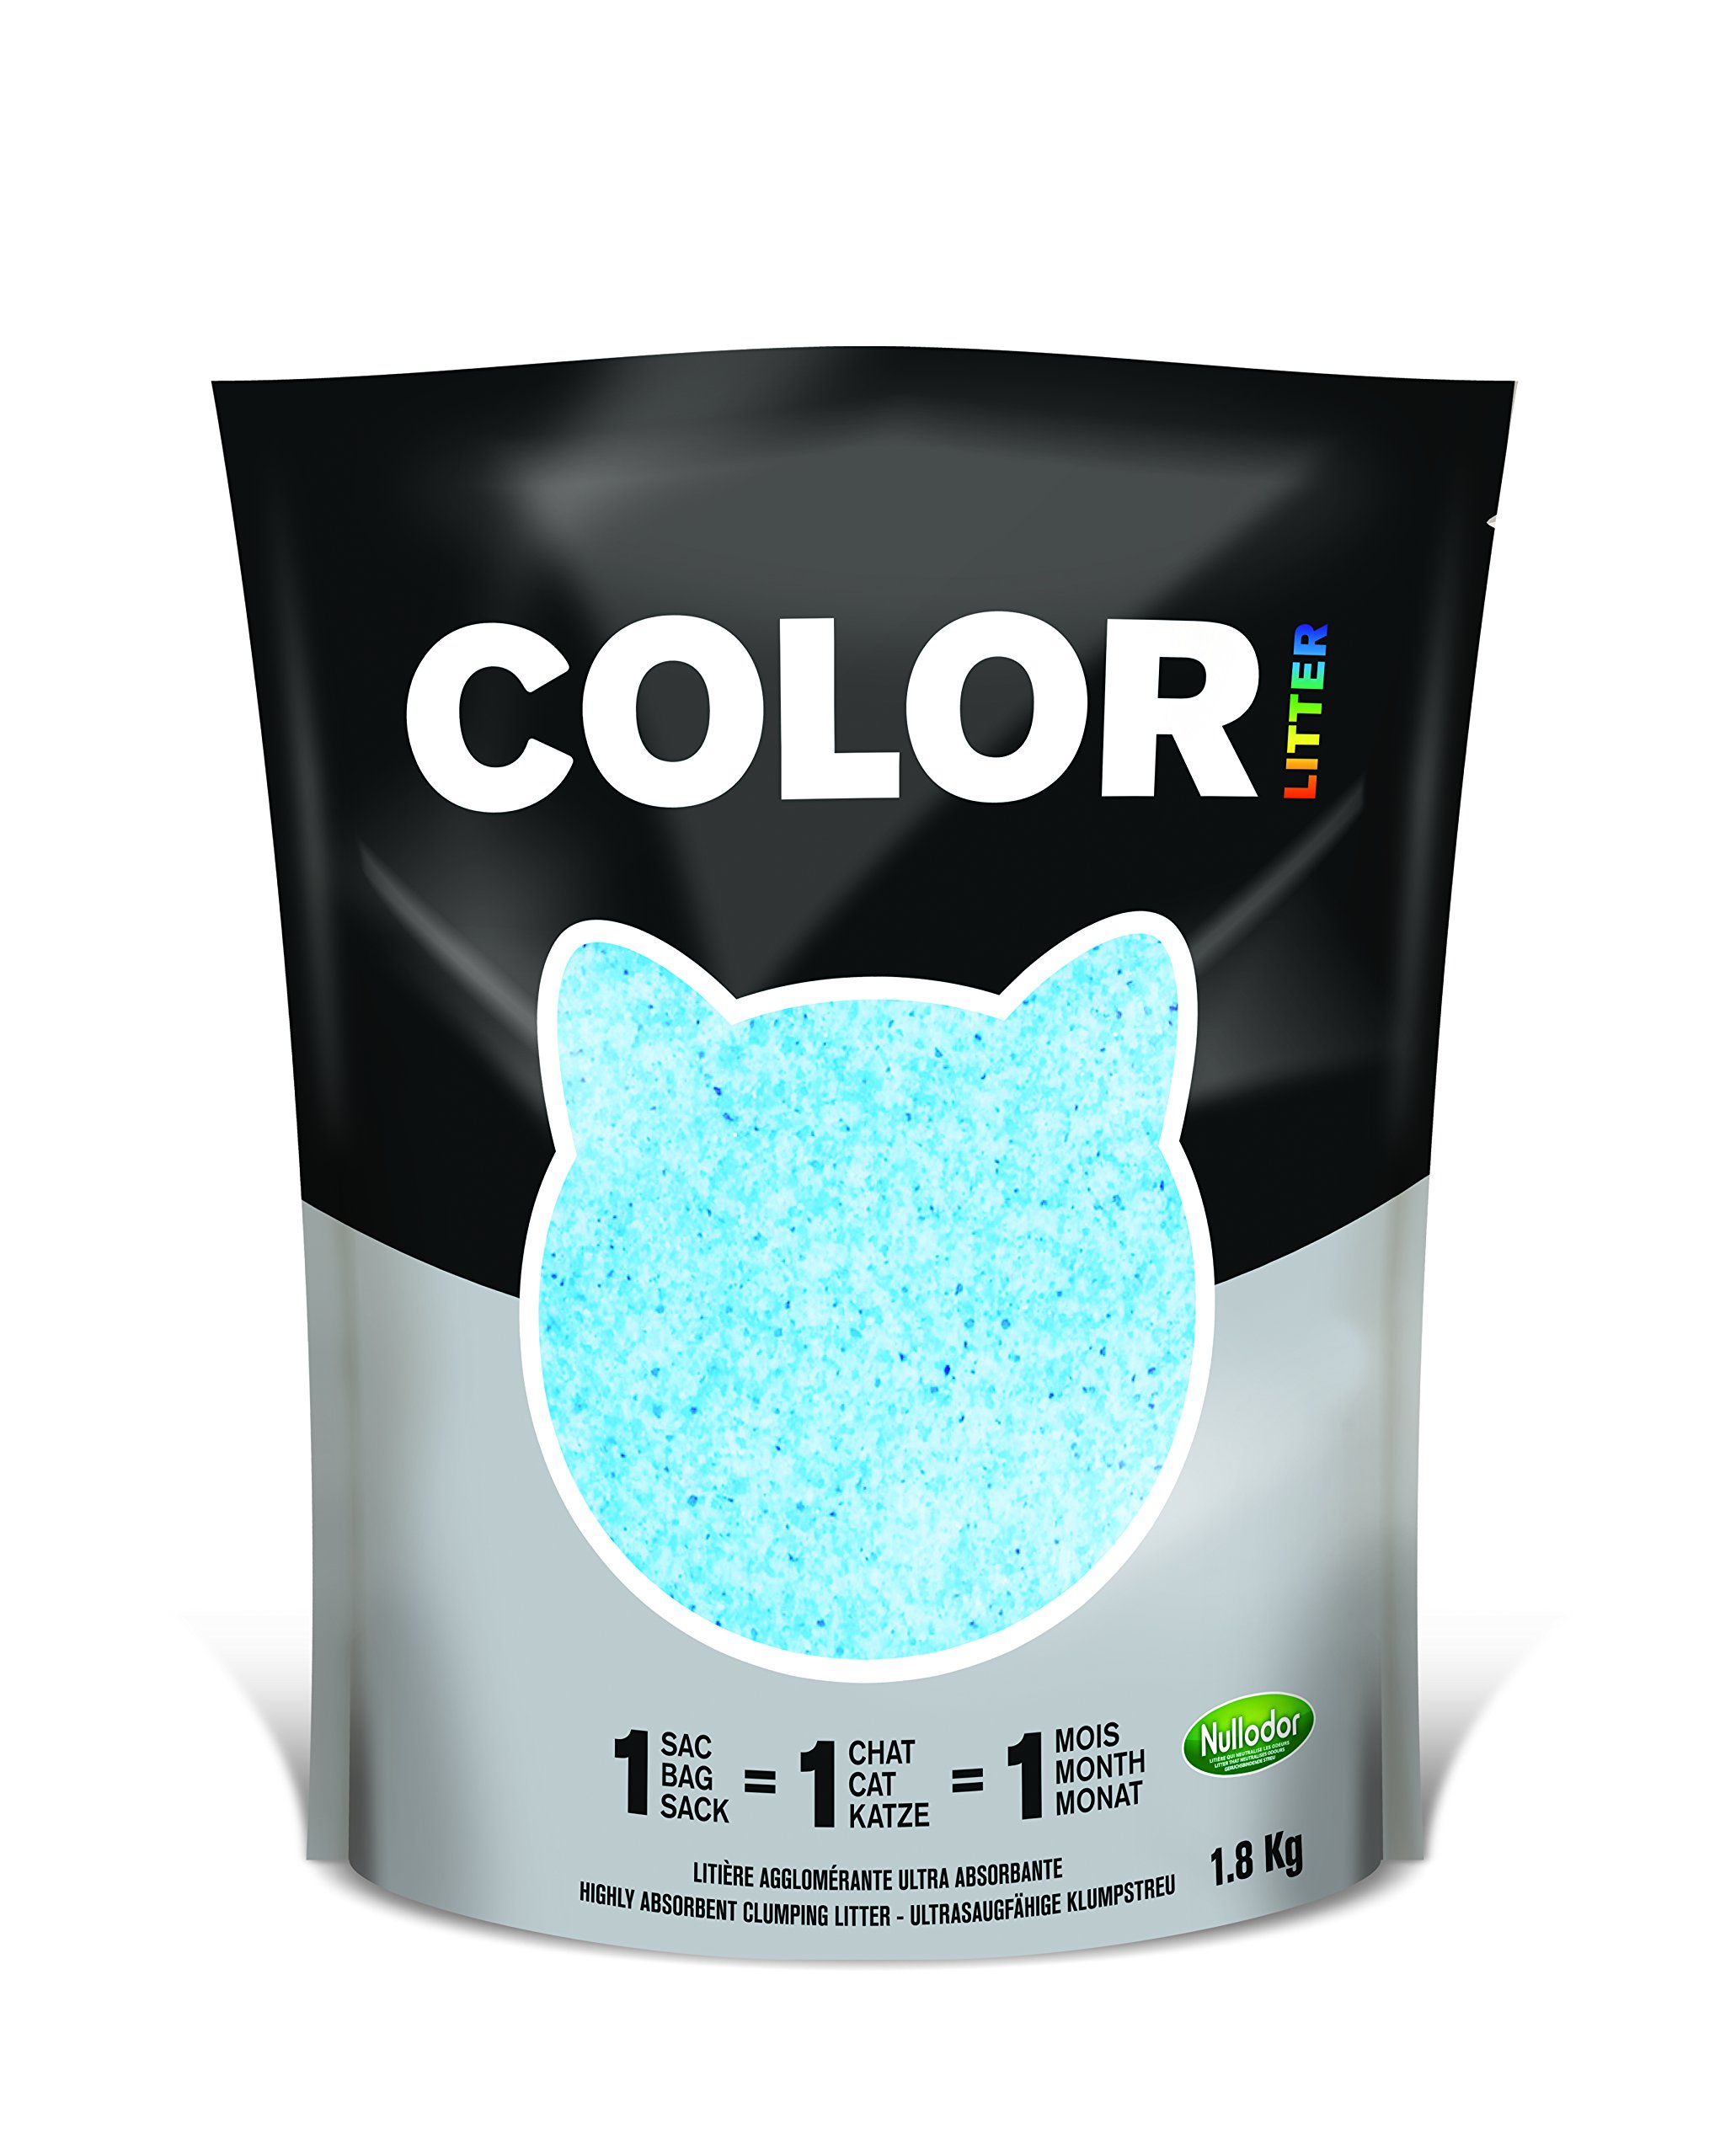 Nullodor Arena para Gatos Color Azul, 1,8 kg: Amazon.es: Productos ...